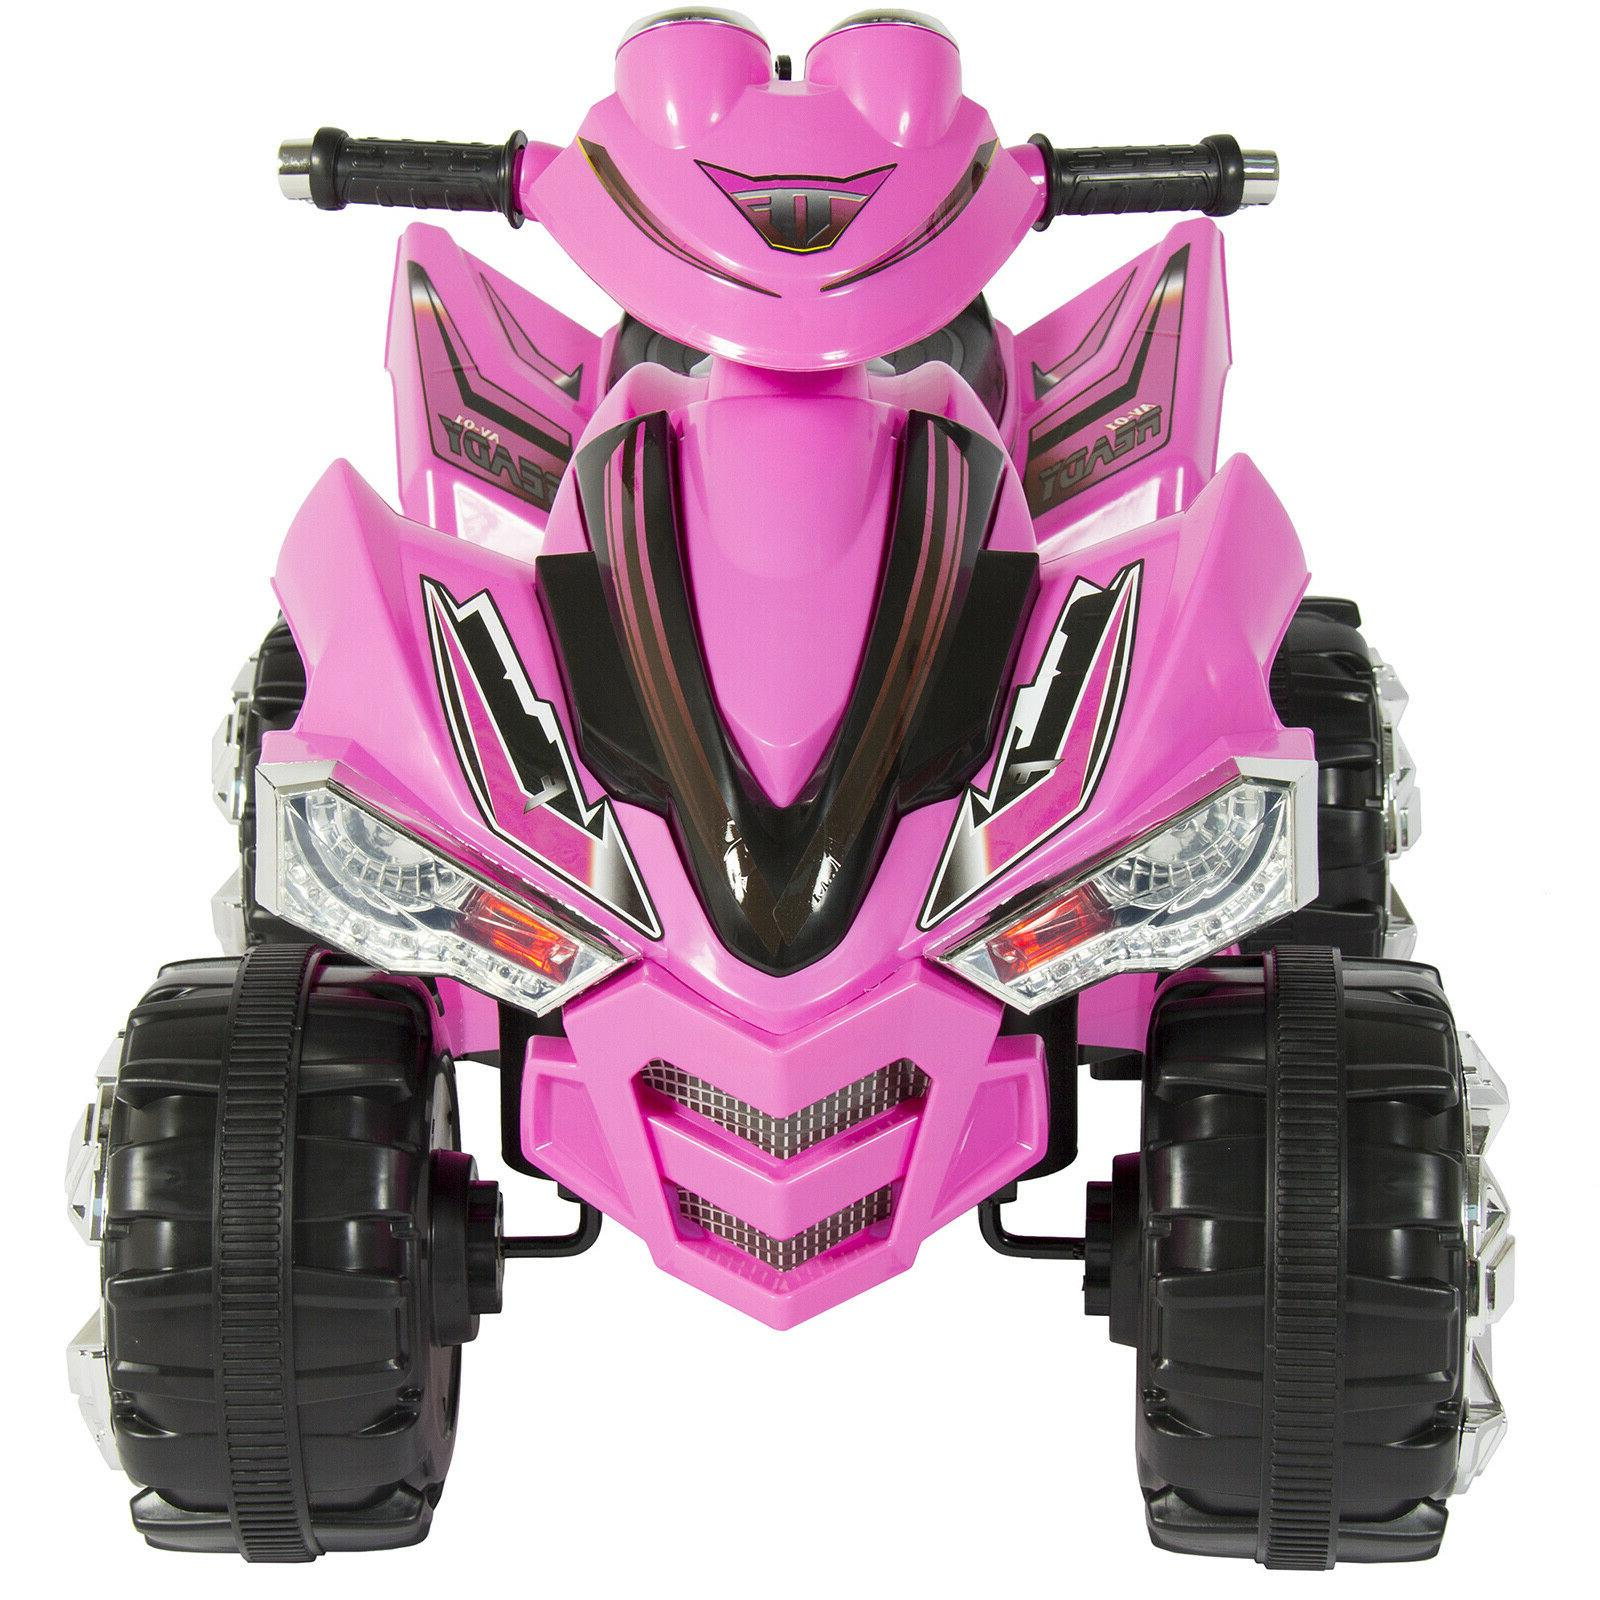 Power Wheels 12V Electric Quad Pink